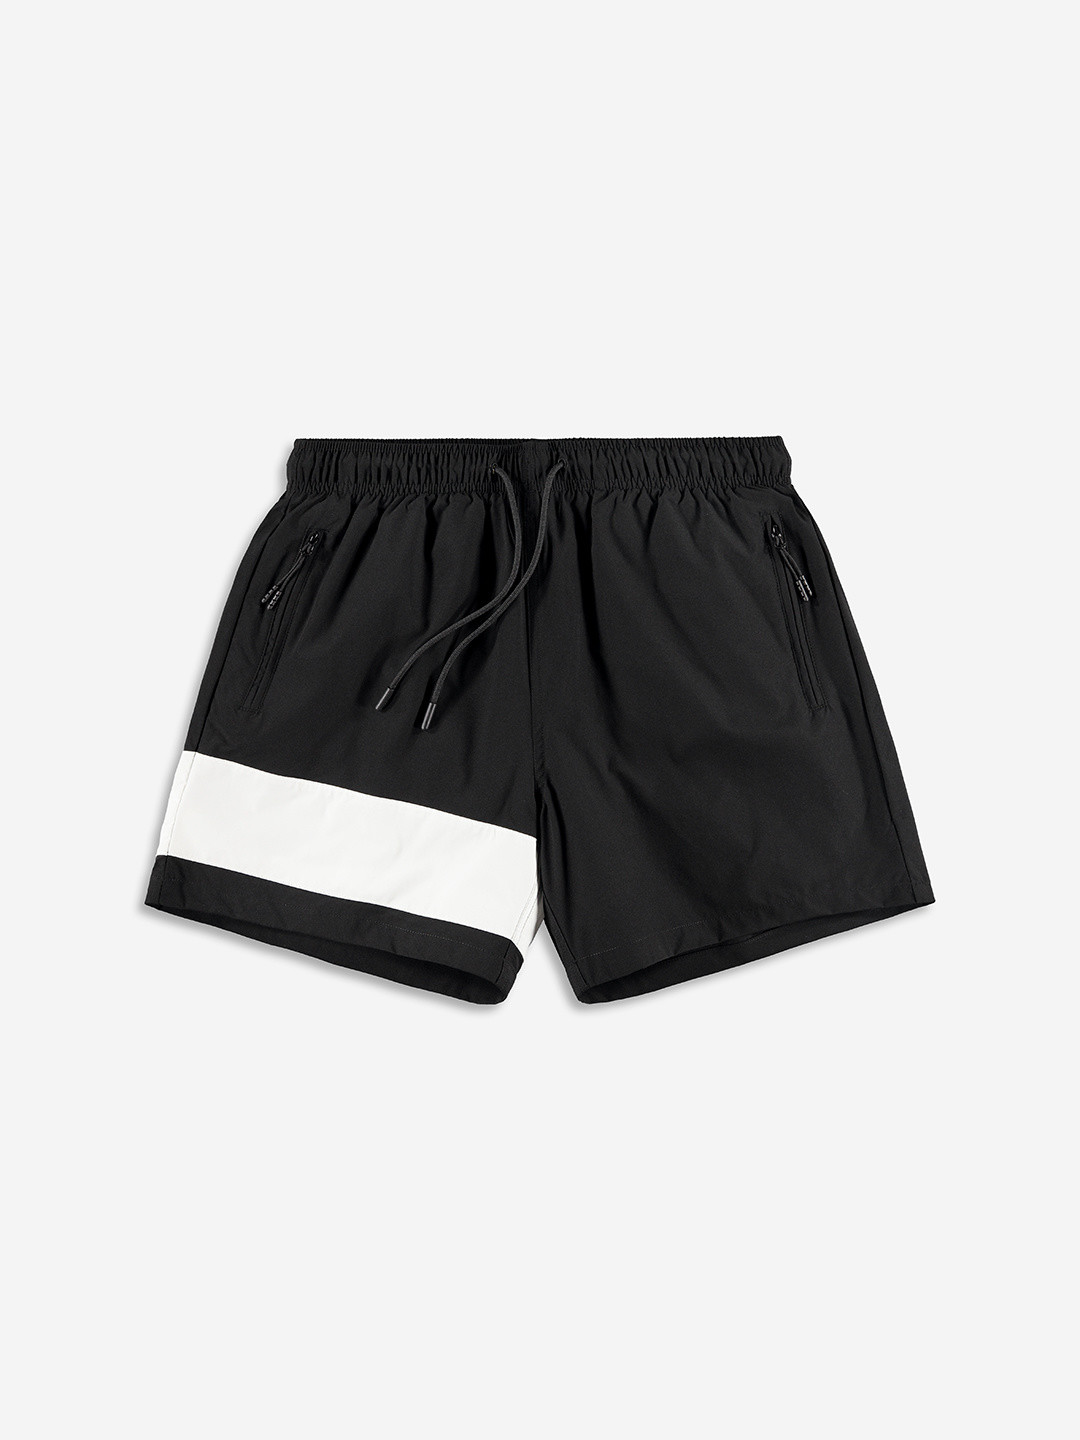 BAND SWIMSHORTS BLACK